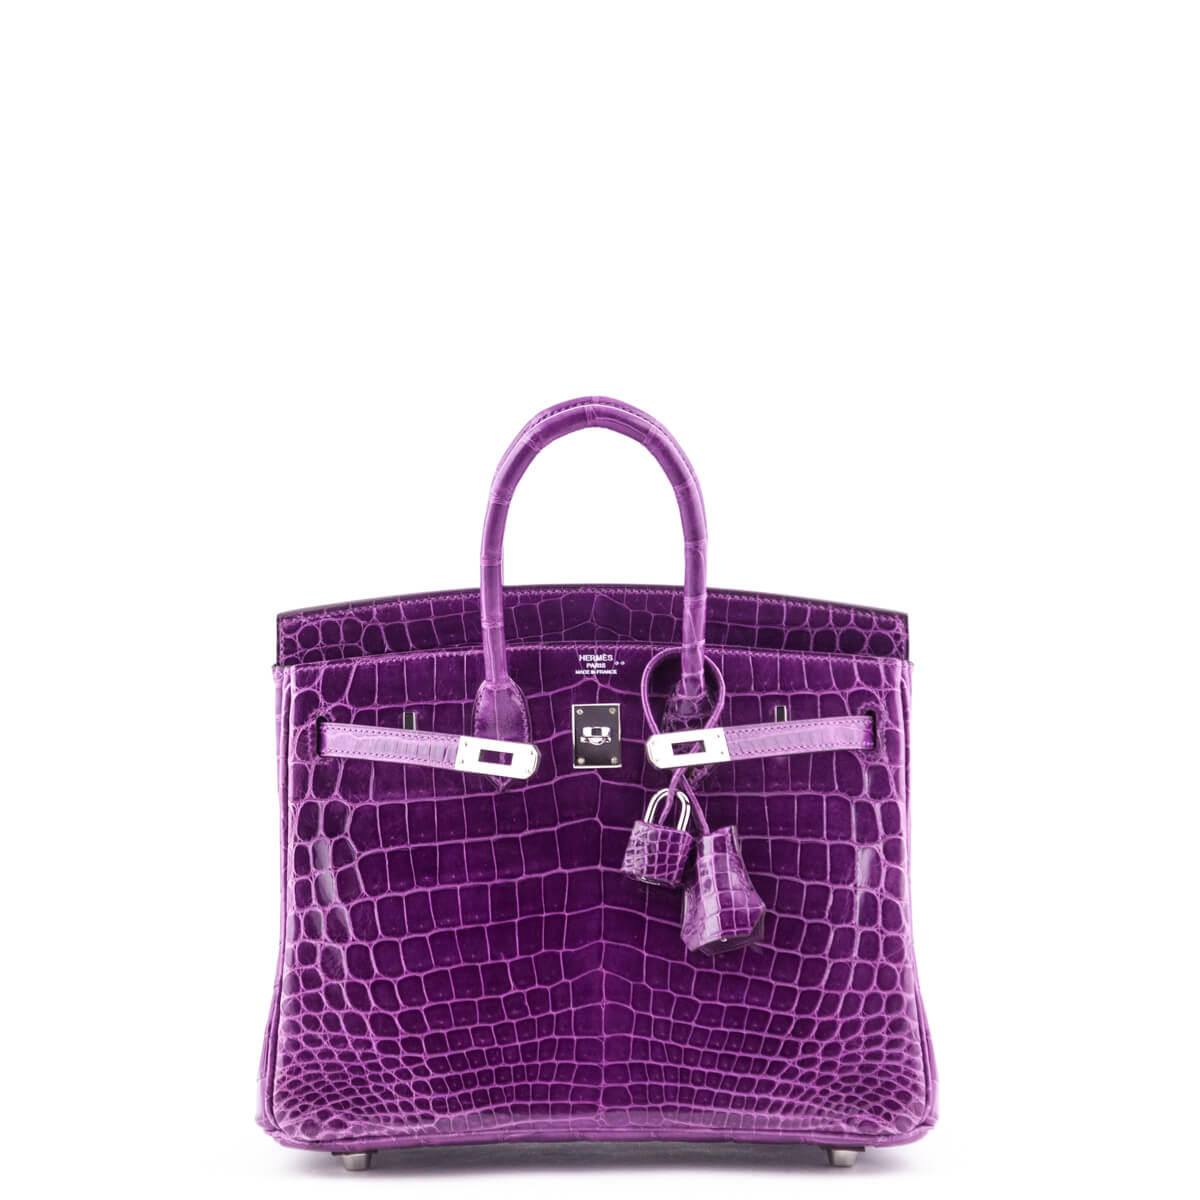 28adfcd0181e Hermes violet niloticus crocodile birkin love that bag preowned authentic  designer handbags jpg 1200x1200 Violet bags